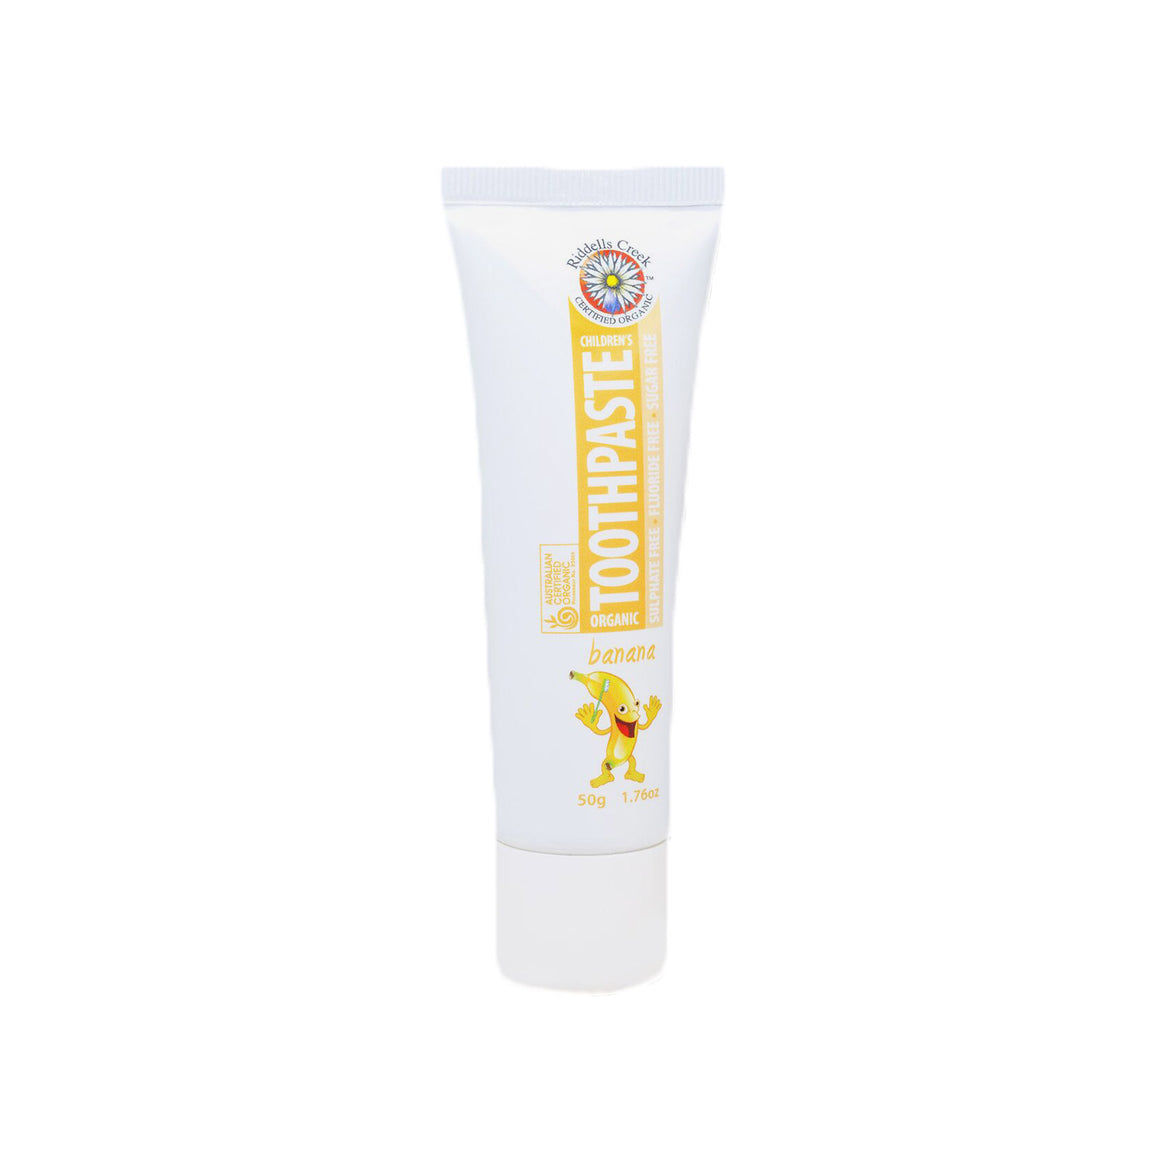 Riddells Creek Toothpaste Banana - 50g